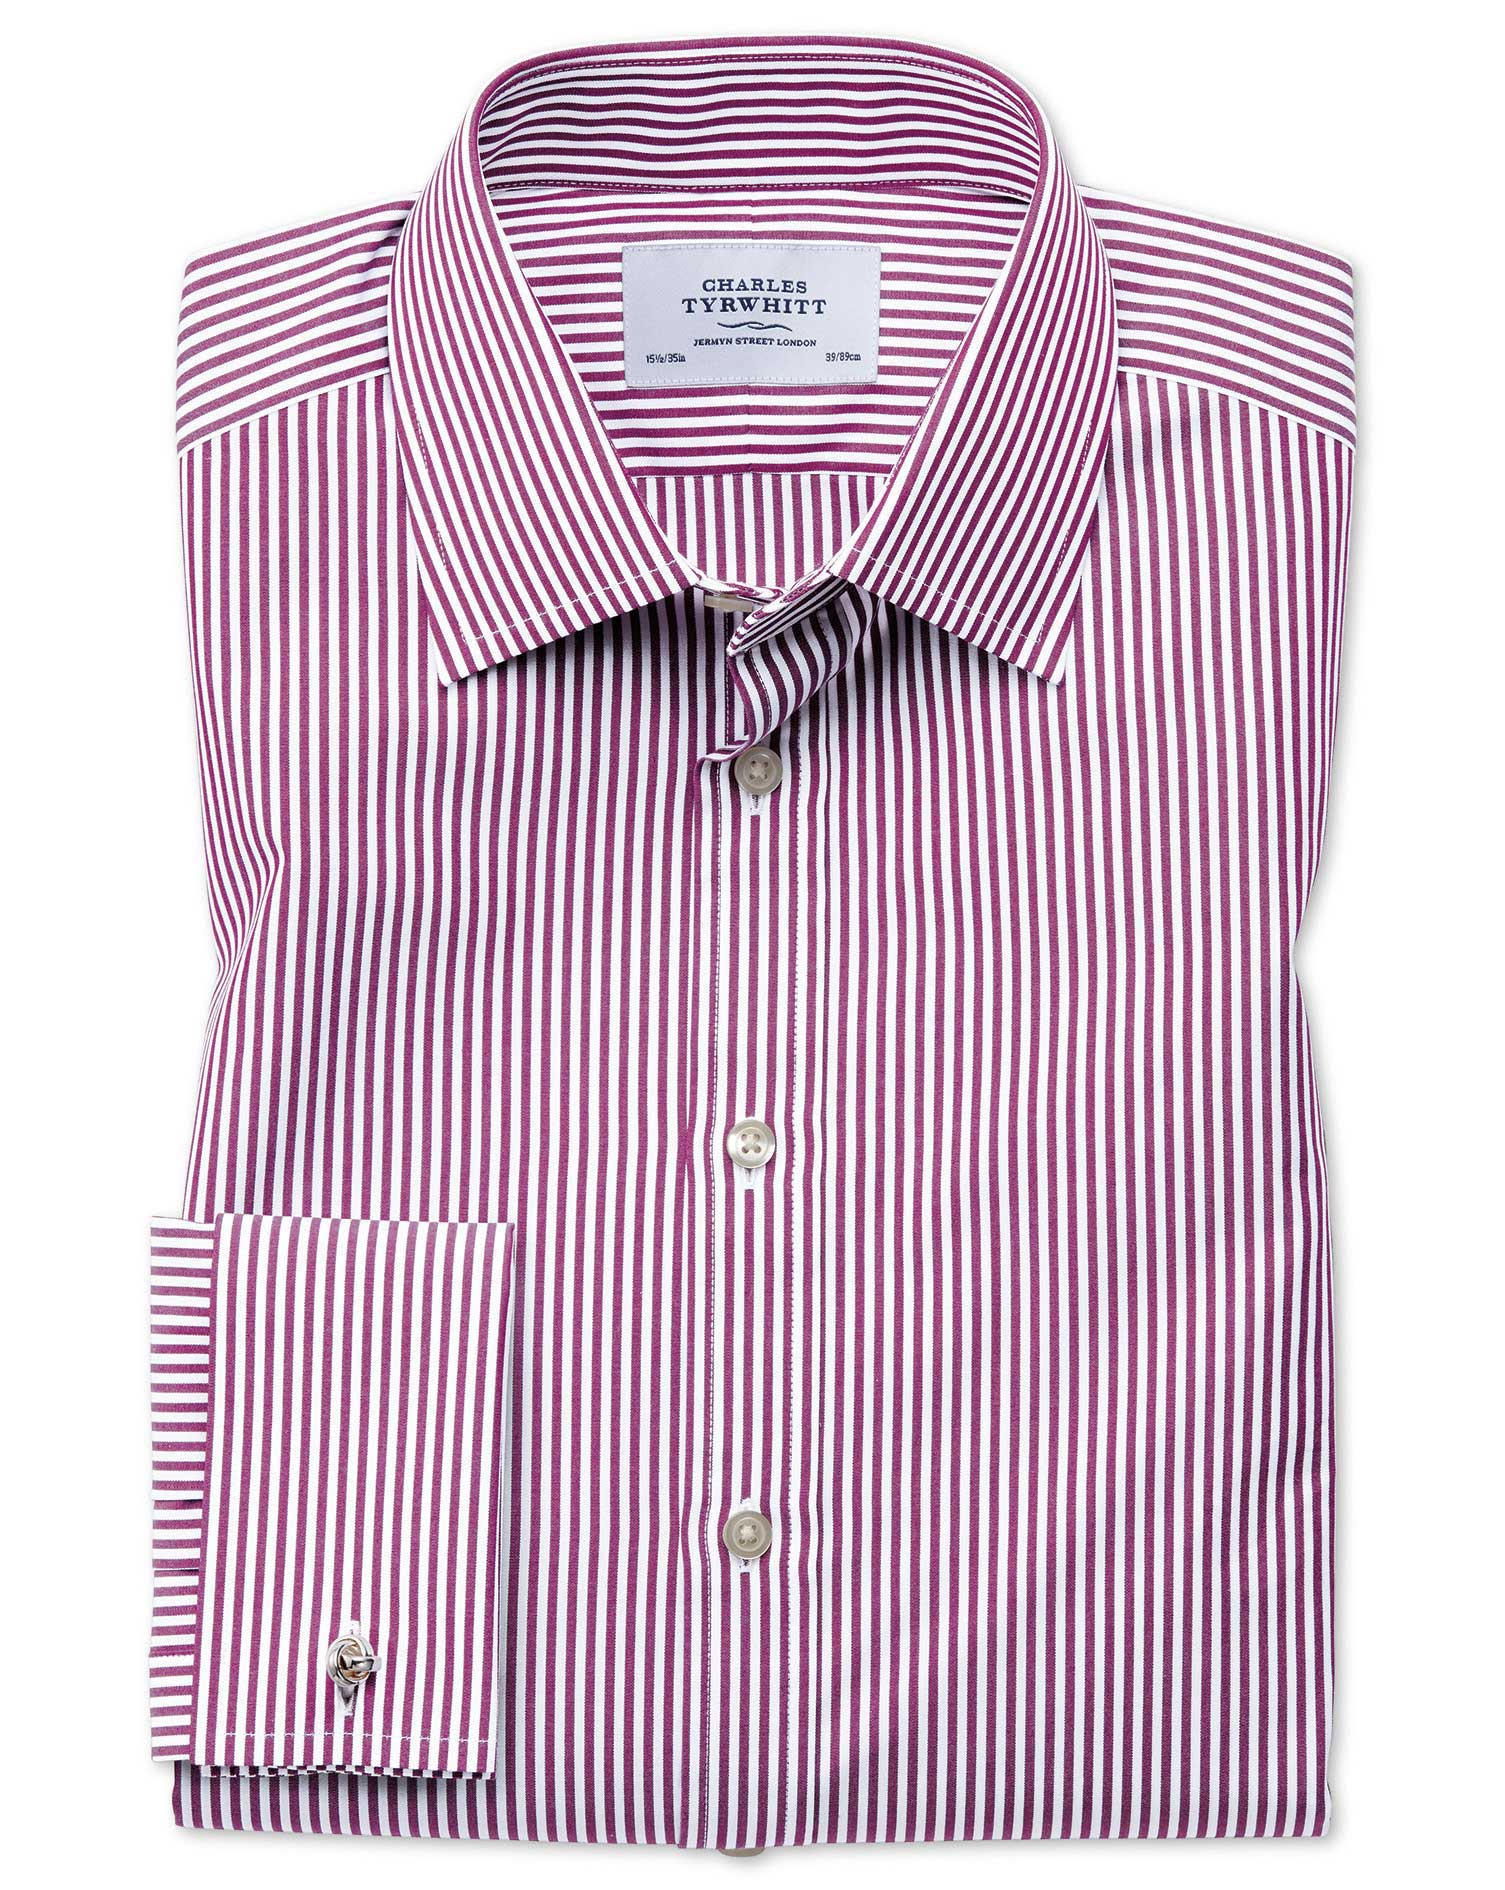 Classic Fit Bengal Stripe Purple Cotton Formal Shirt Double Cuff Size 16.5/35 by Charles Tyrwhitt